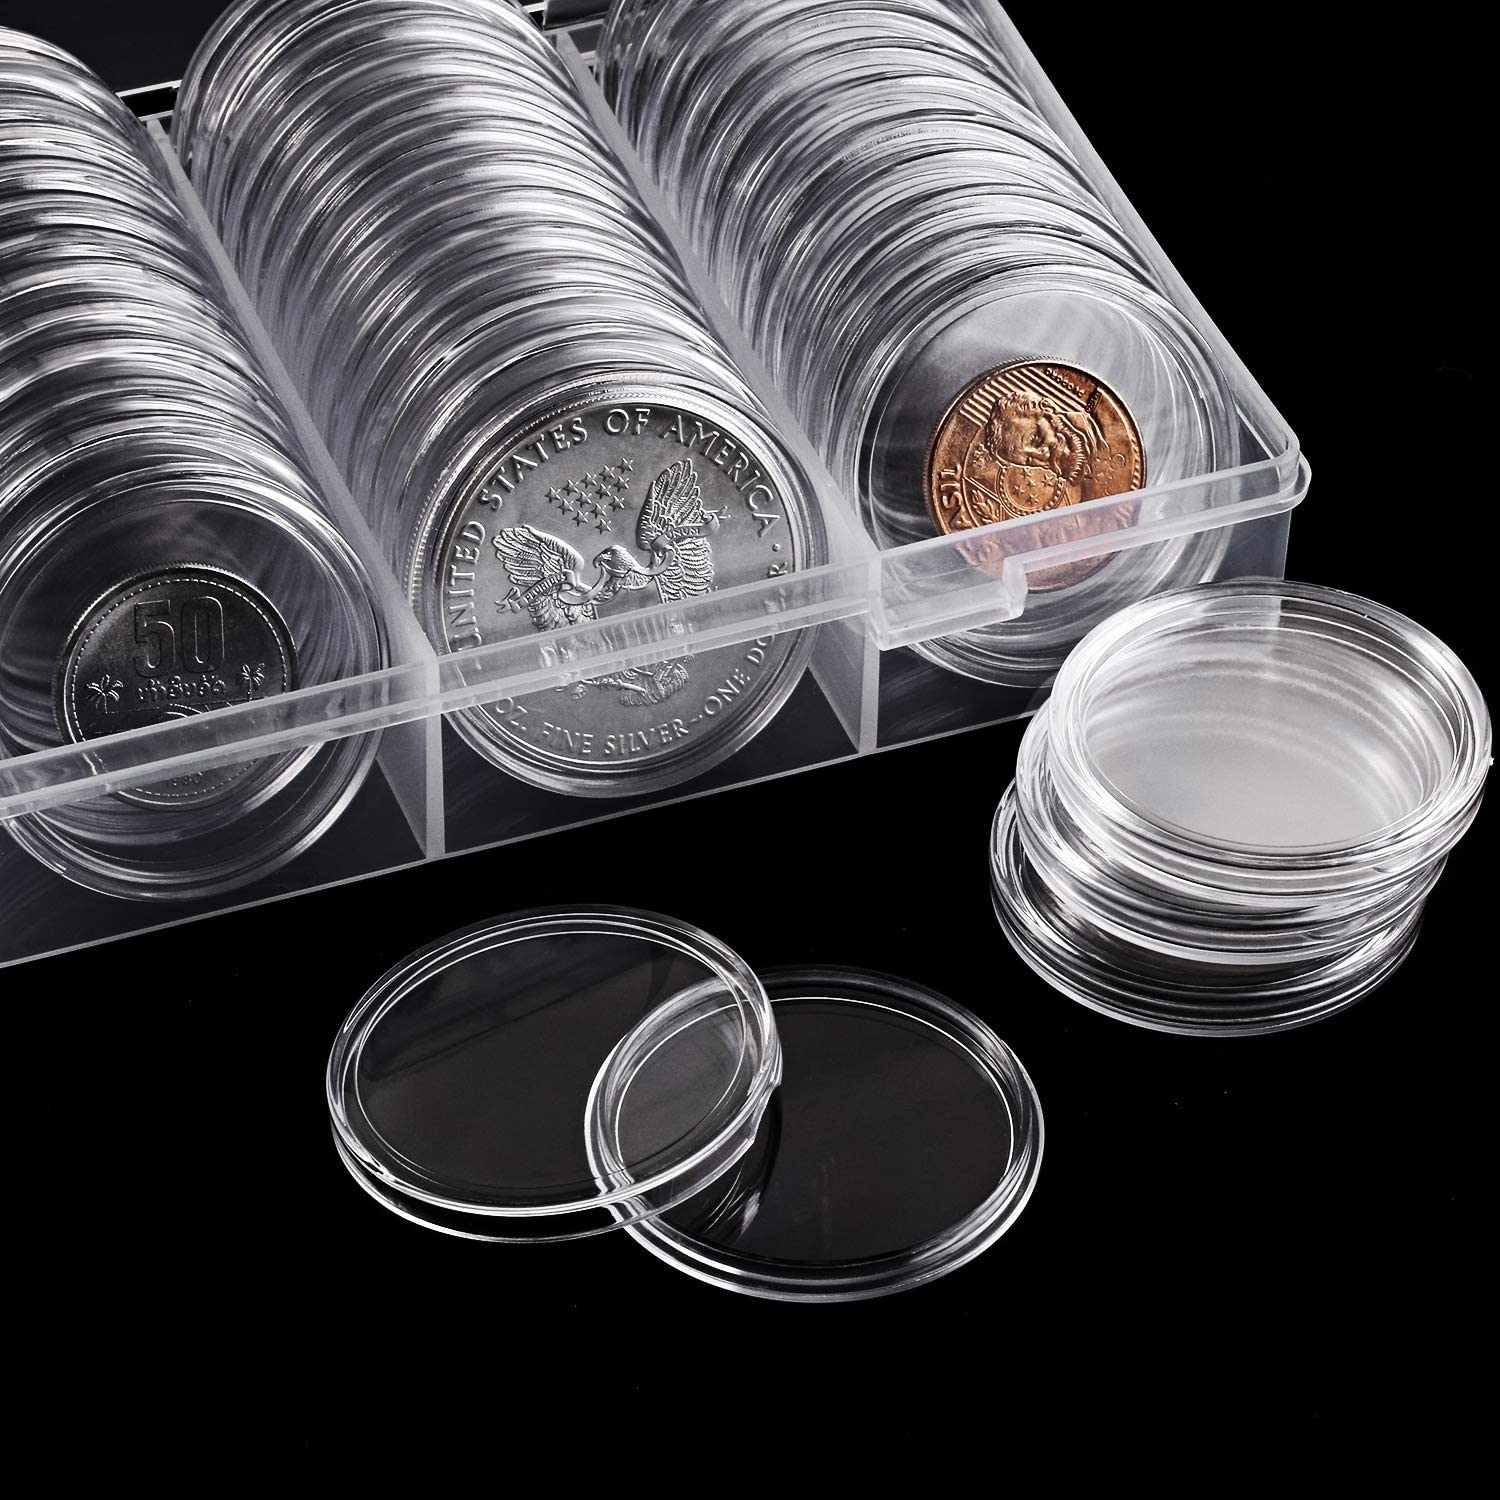 40 mm Silver Coin Holder Coin Case Coin Capsules Storage Container with Storage Organizer Box for Coin Collection Supplies (60 Pieces) : Office Products